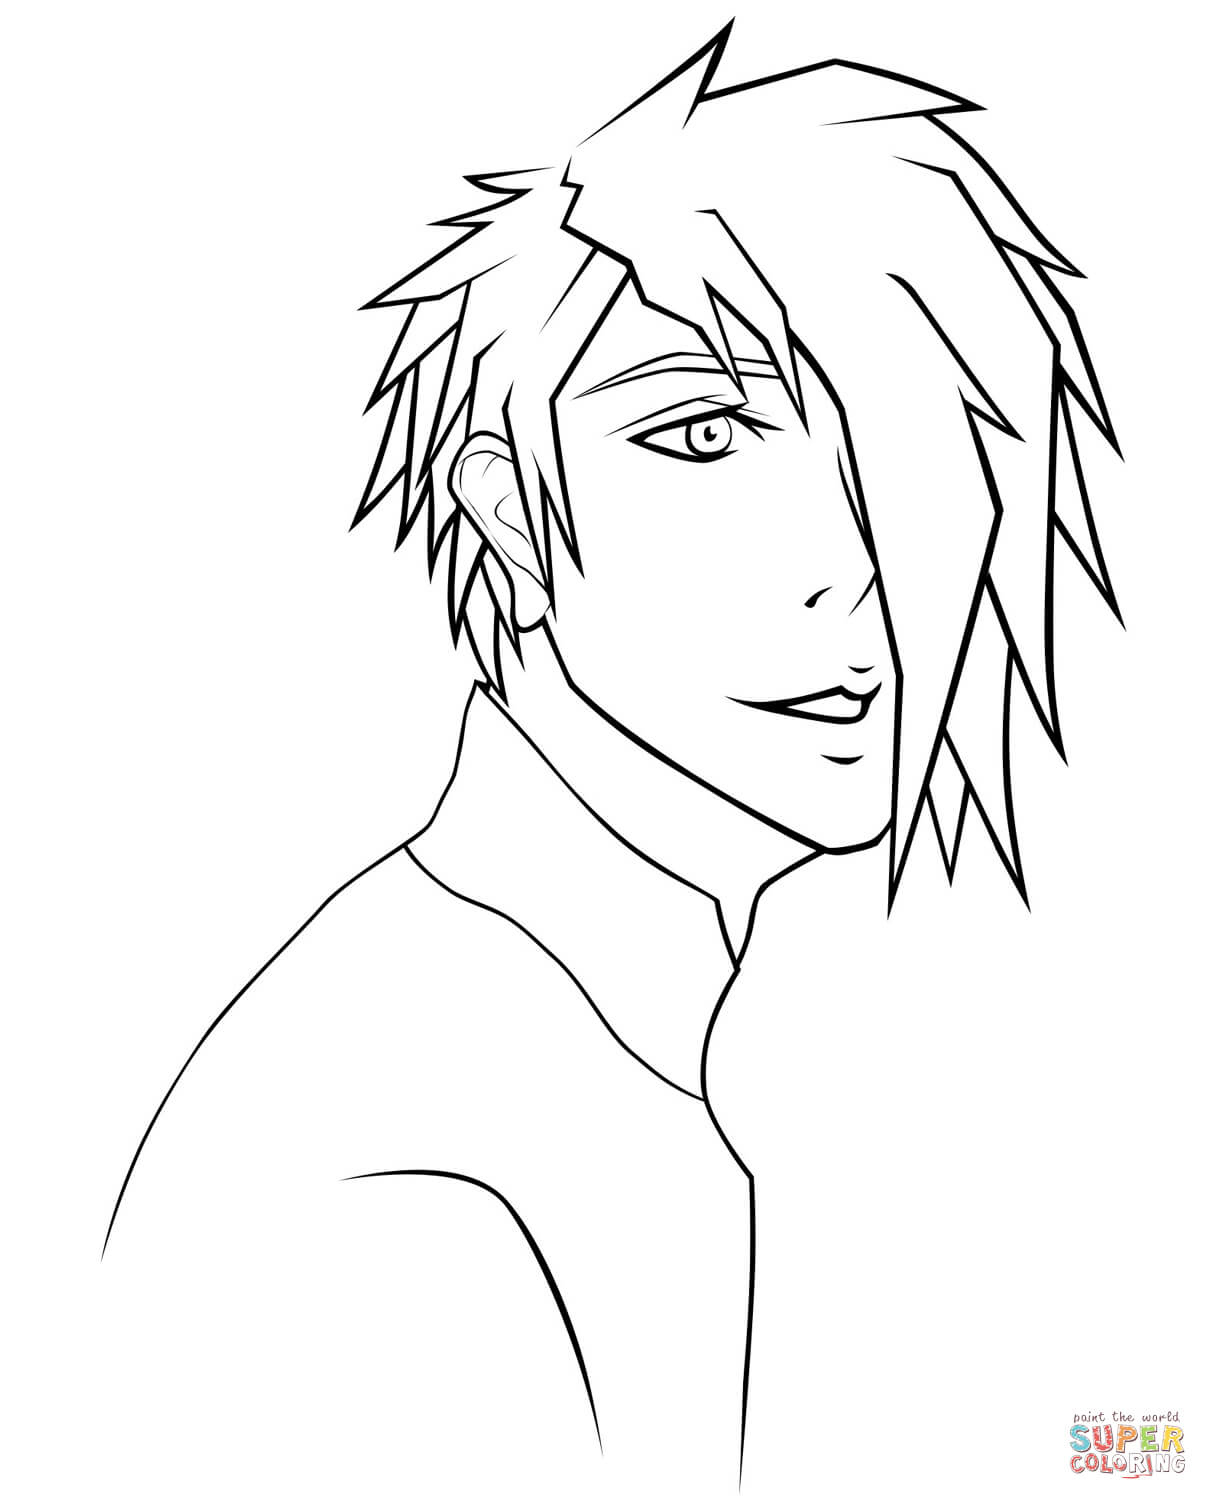 Anime Boy Drawing at GetDrawings.com | Free for personal use Anime ...